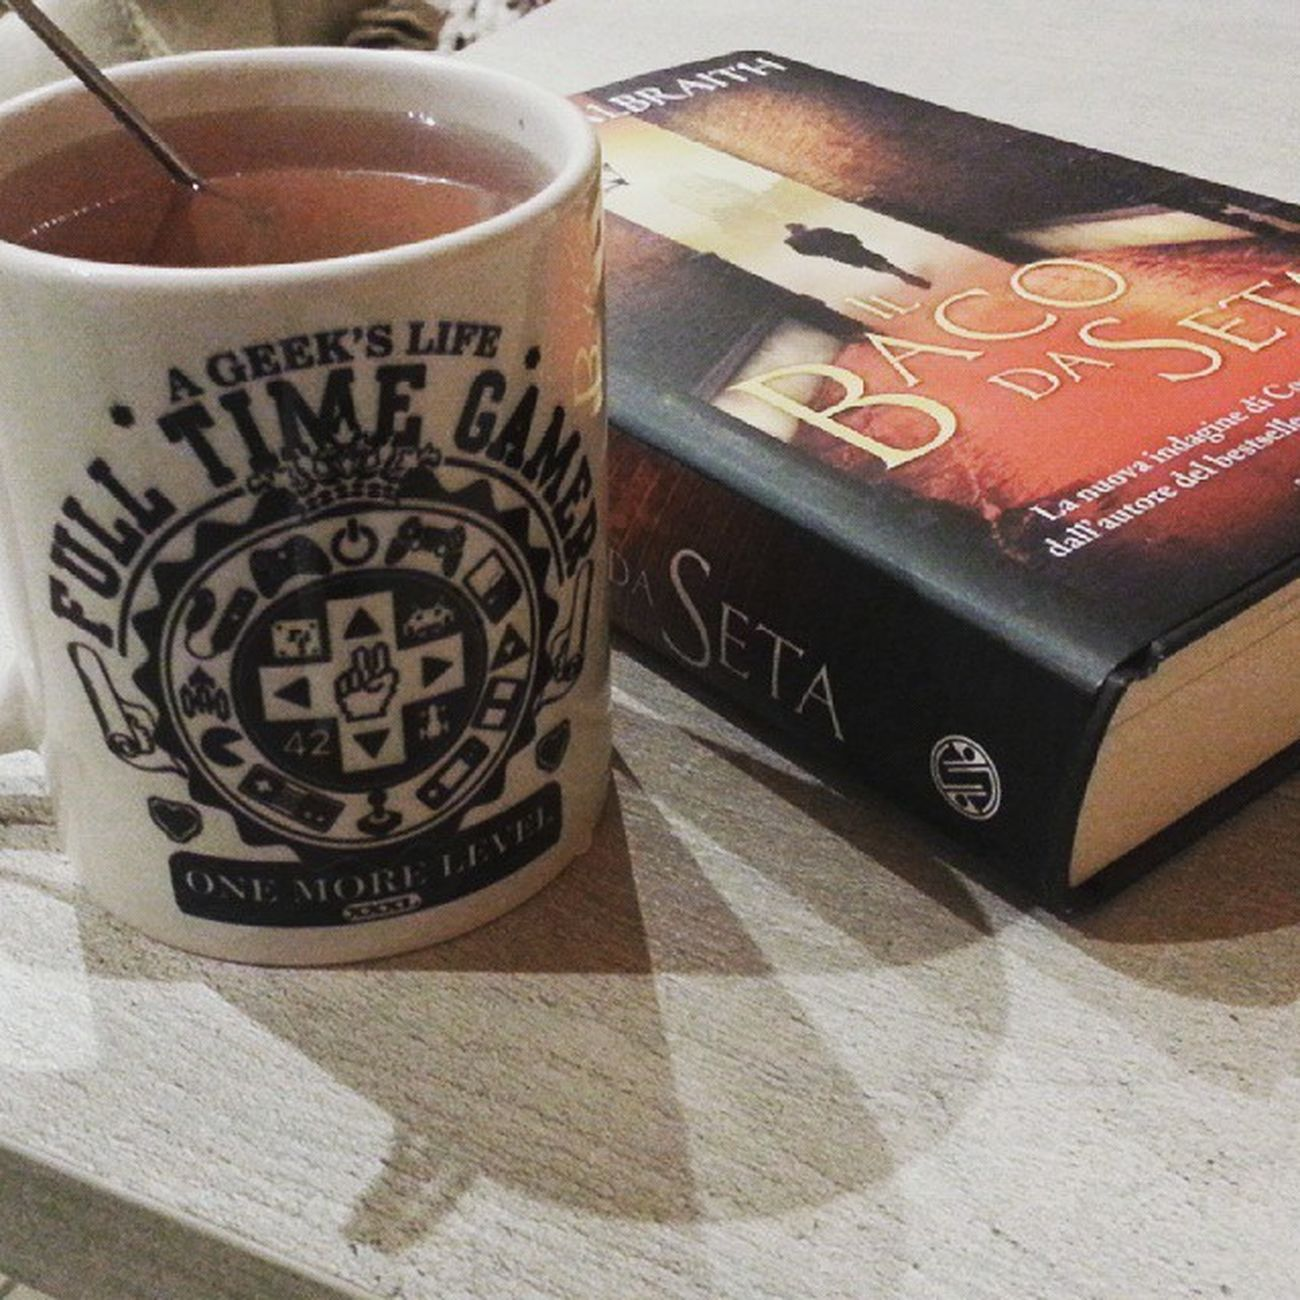 Totally in love!Picoftheday Happy Happiness Mug Gamer Fulltimegamer Tea Cinnamontea Ilbacodaseta Silkworm RobertGalbraith Book Booksonbooksonbooks Bookworm Cormoranstrike Readingchallenge Reading PerfectNight